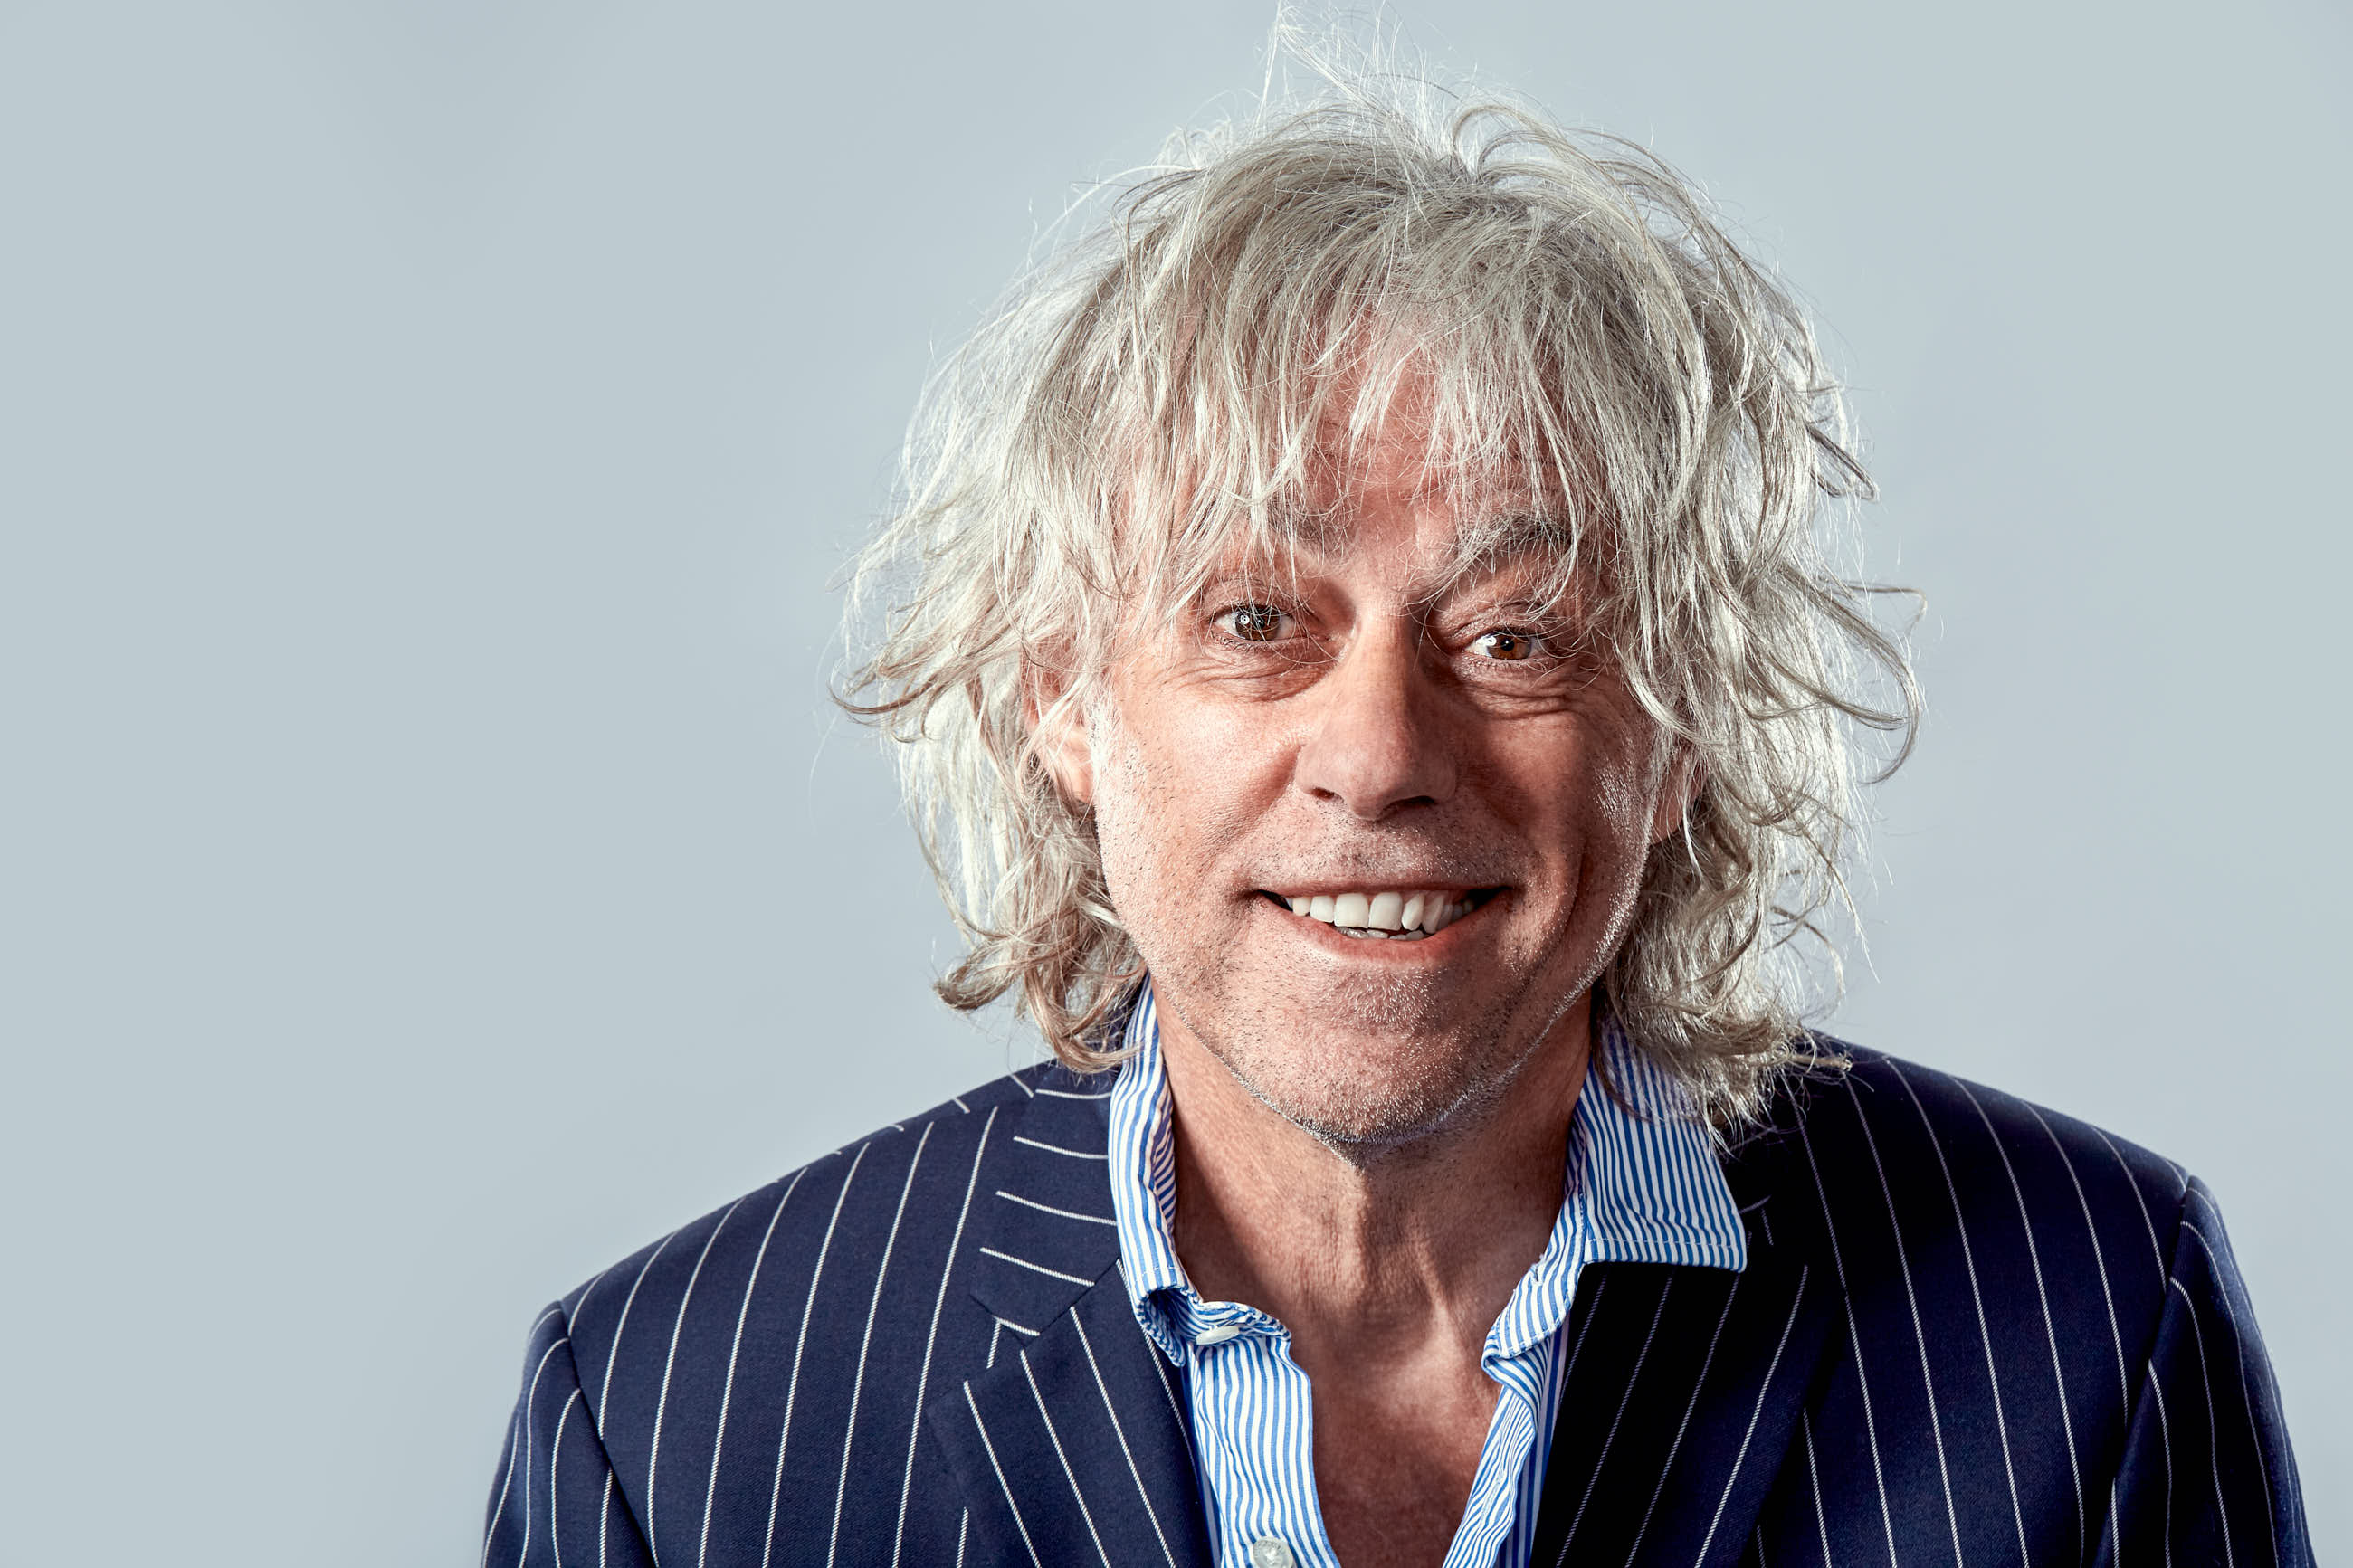 a portrait of Bob Geldof by Jack Terry, all rights reserved